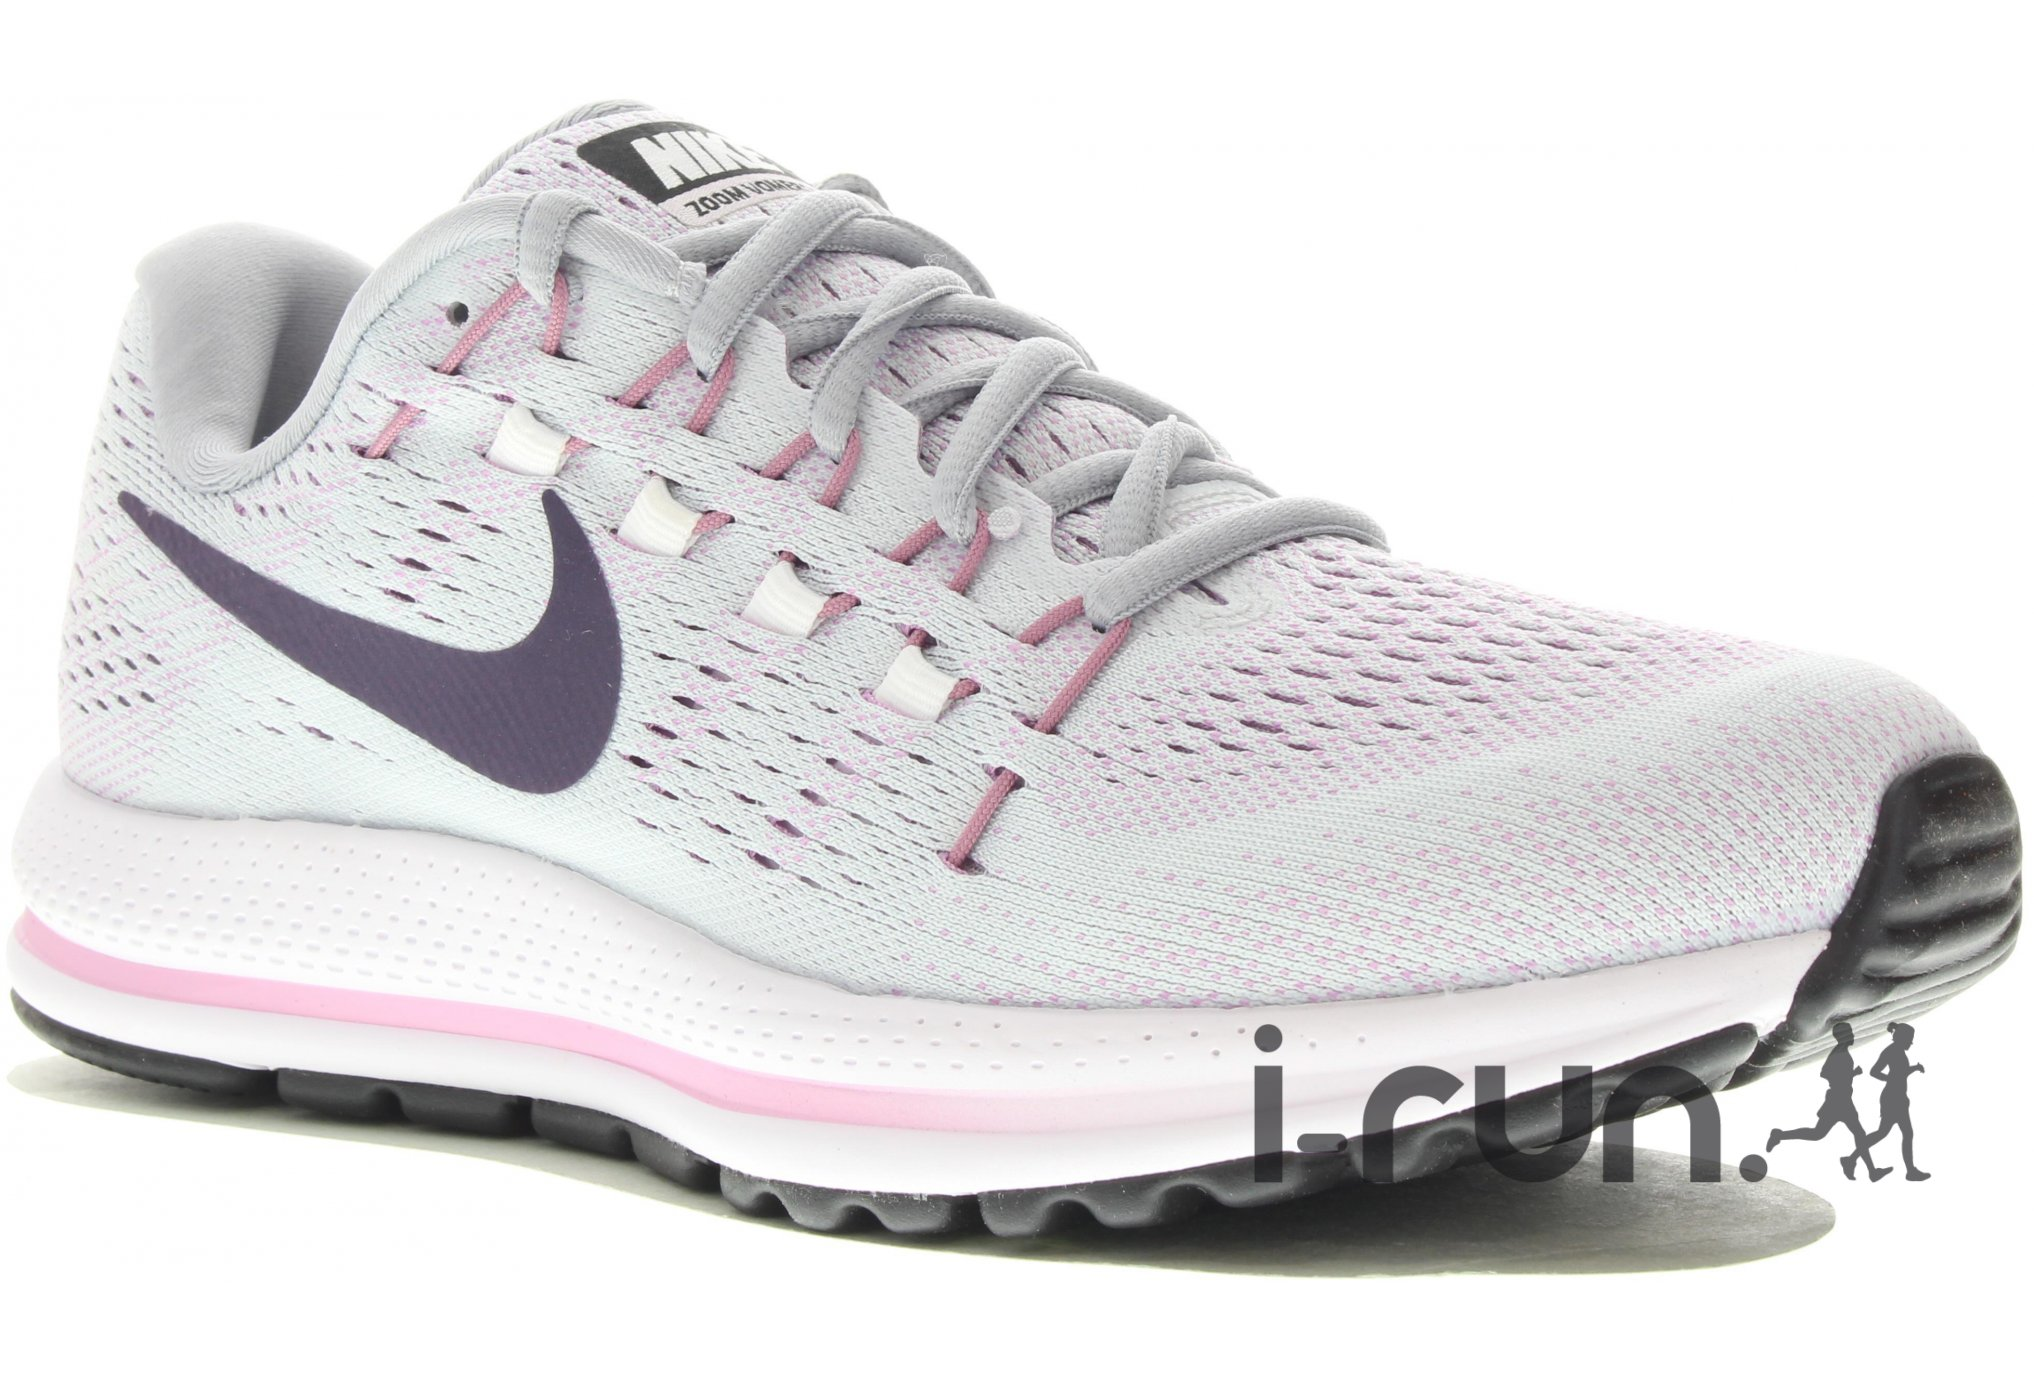 Nike Air Zoom Vomero 12 W Chaussures running femme